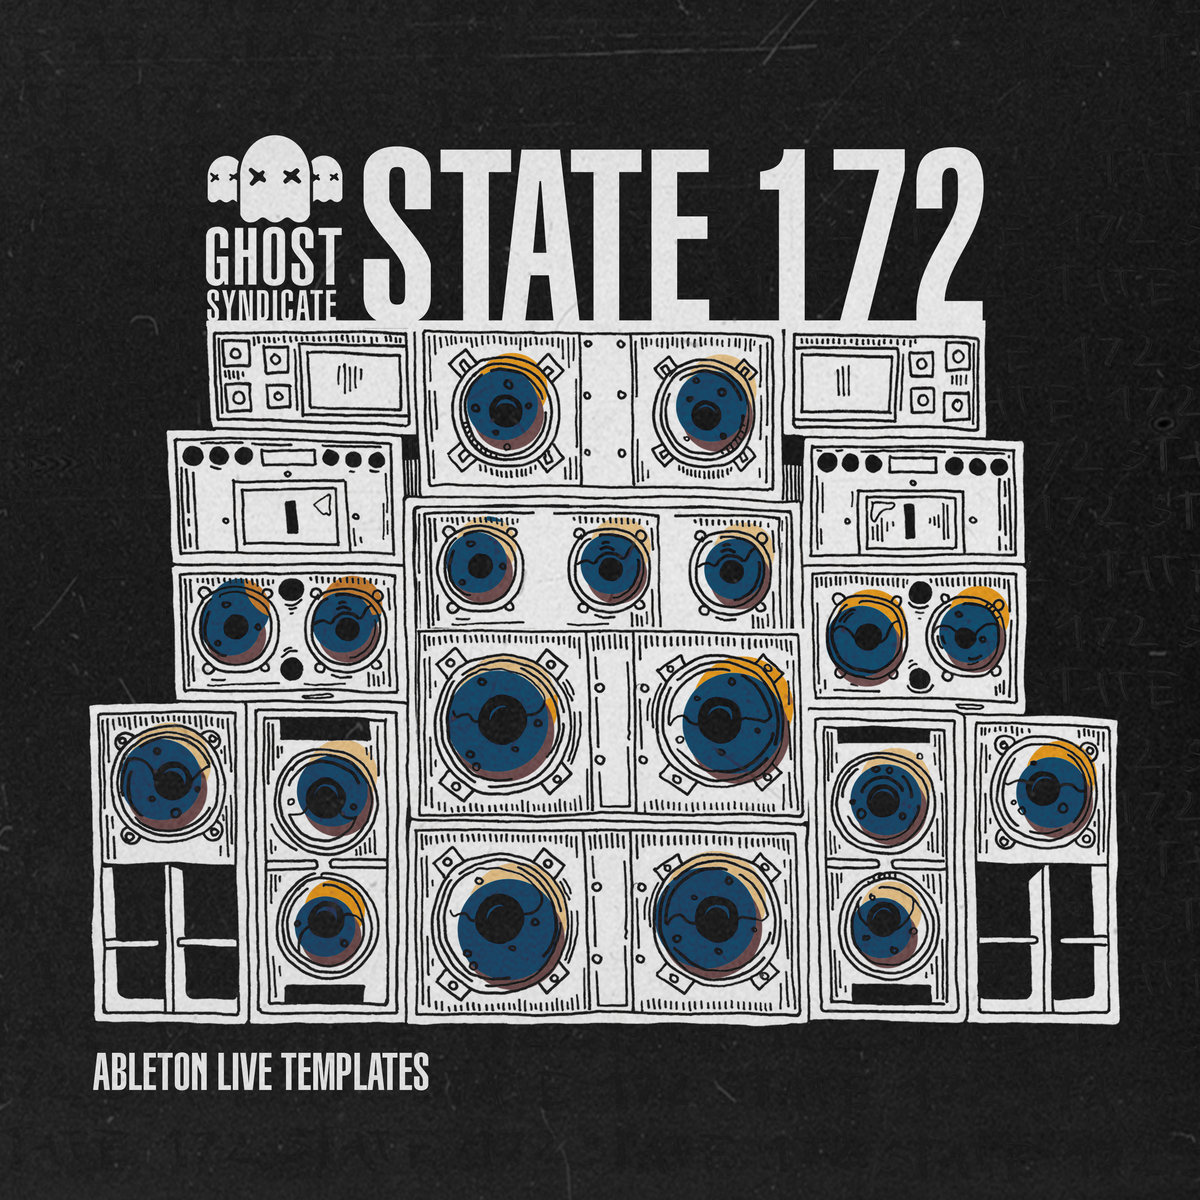 State 172 Ableton Live Templates Ghost Syndicate